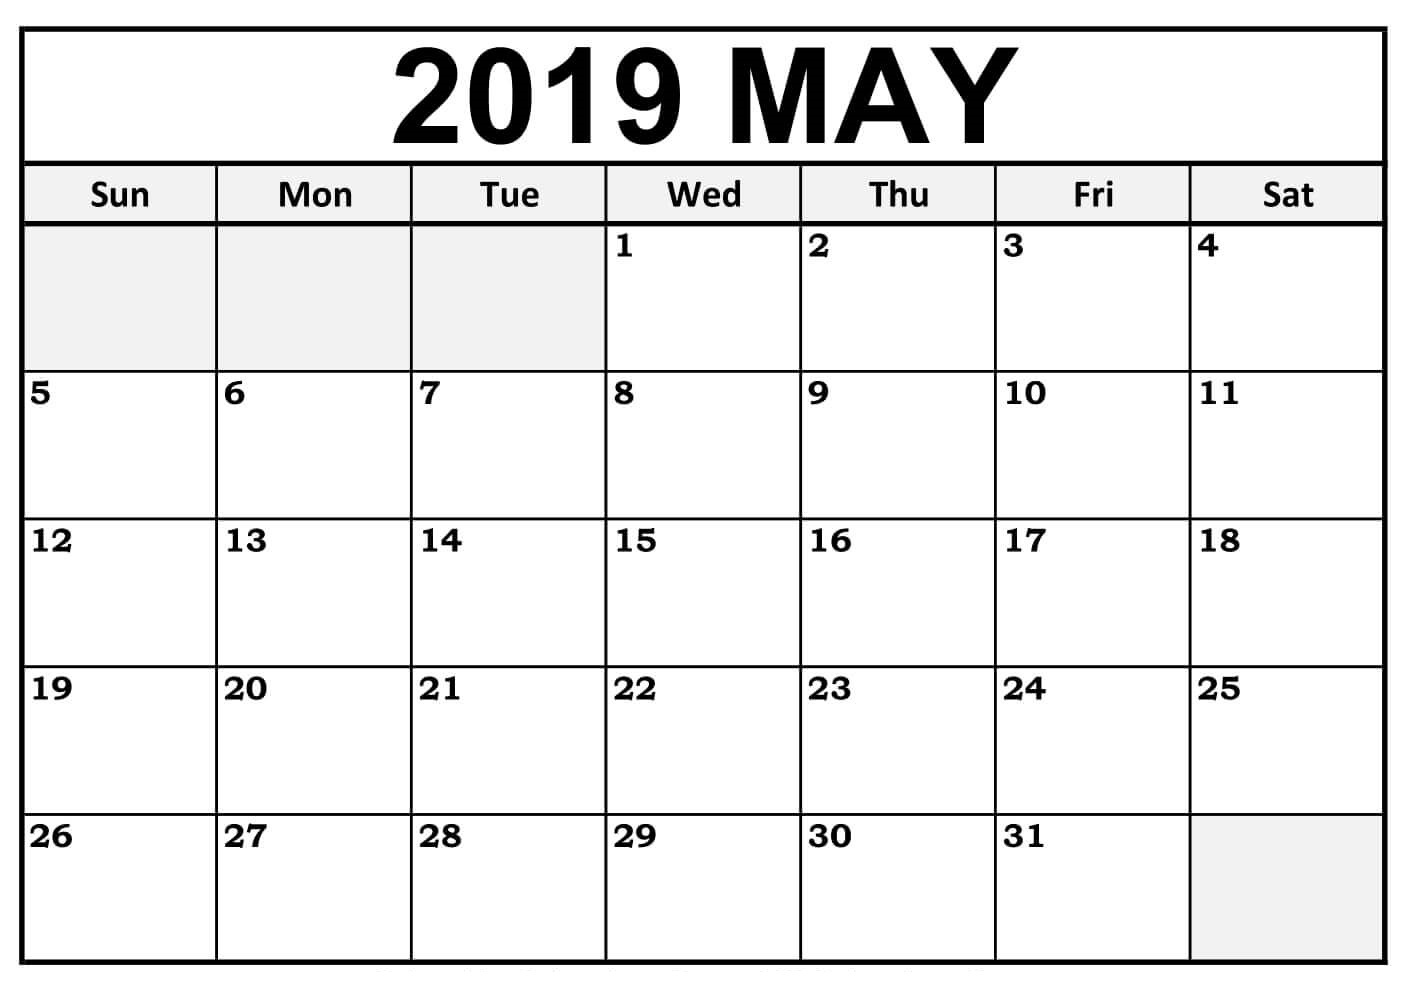 May 2019 Calendar Template Printable Blank With Editable Notes